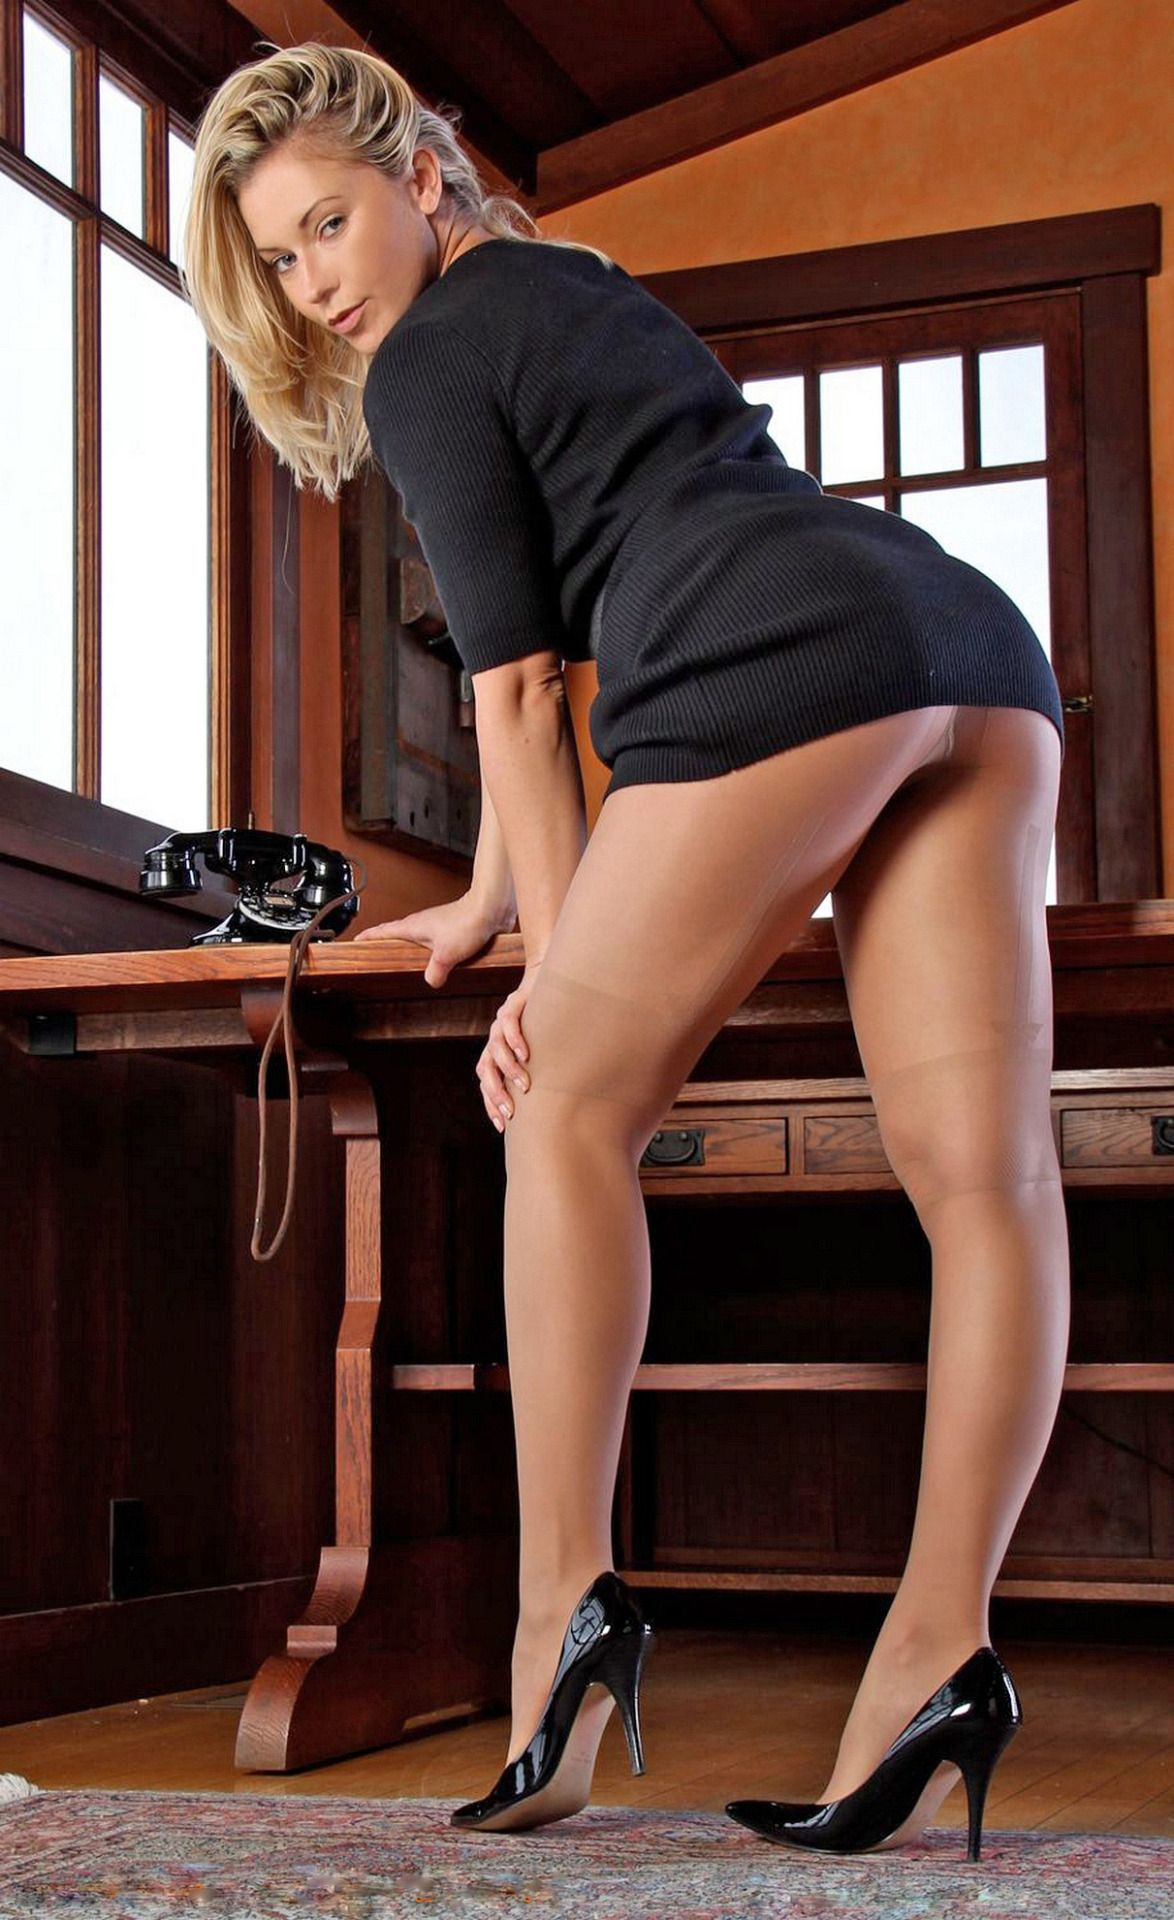 Stunning Blonde Woman in Stockings Heels Incredibly